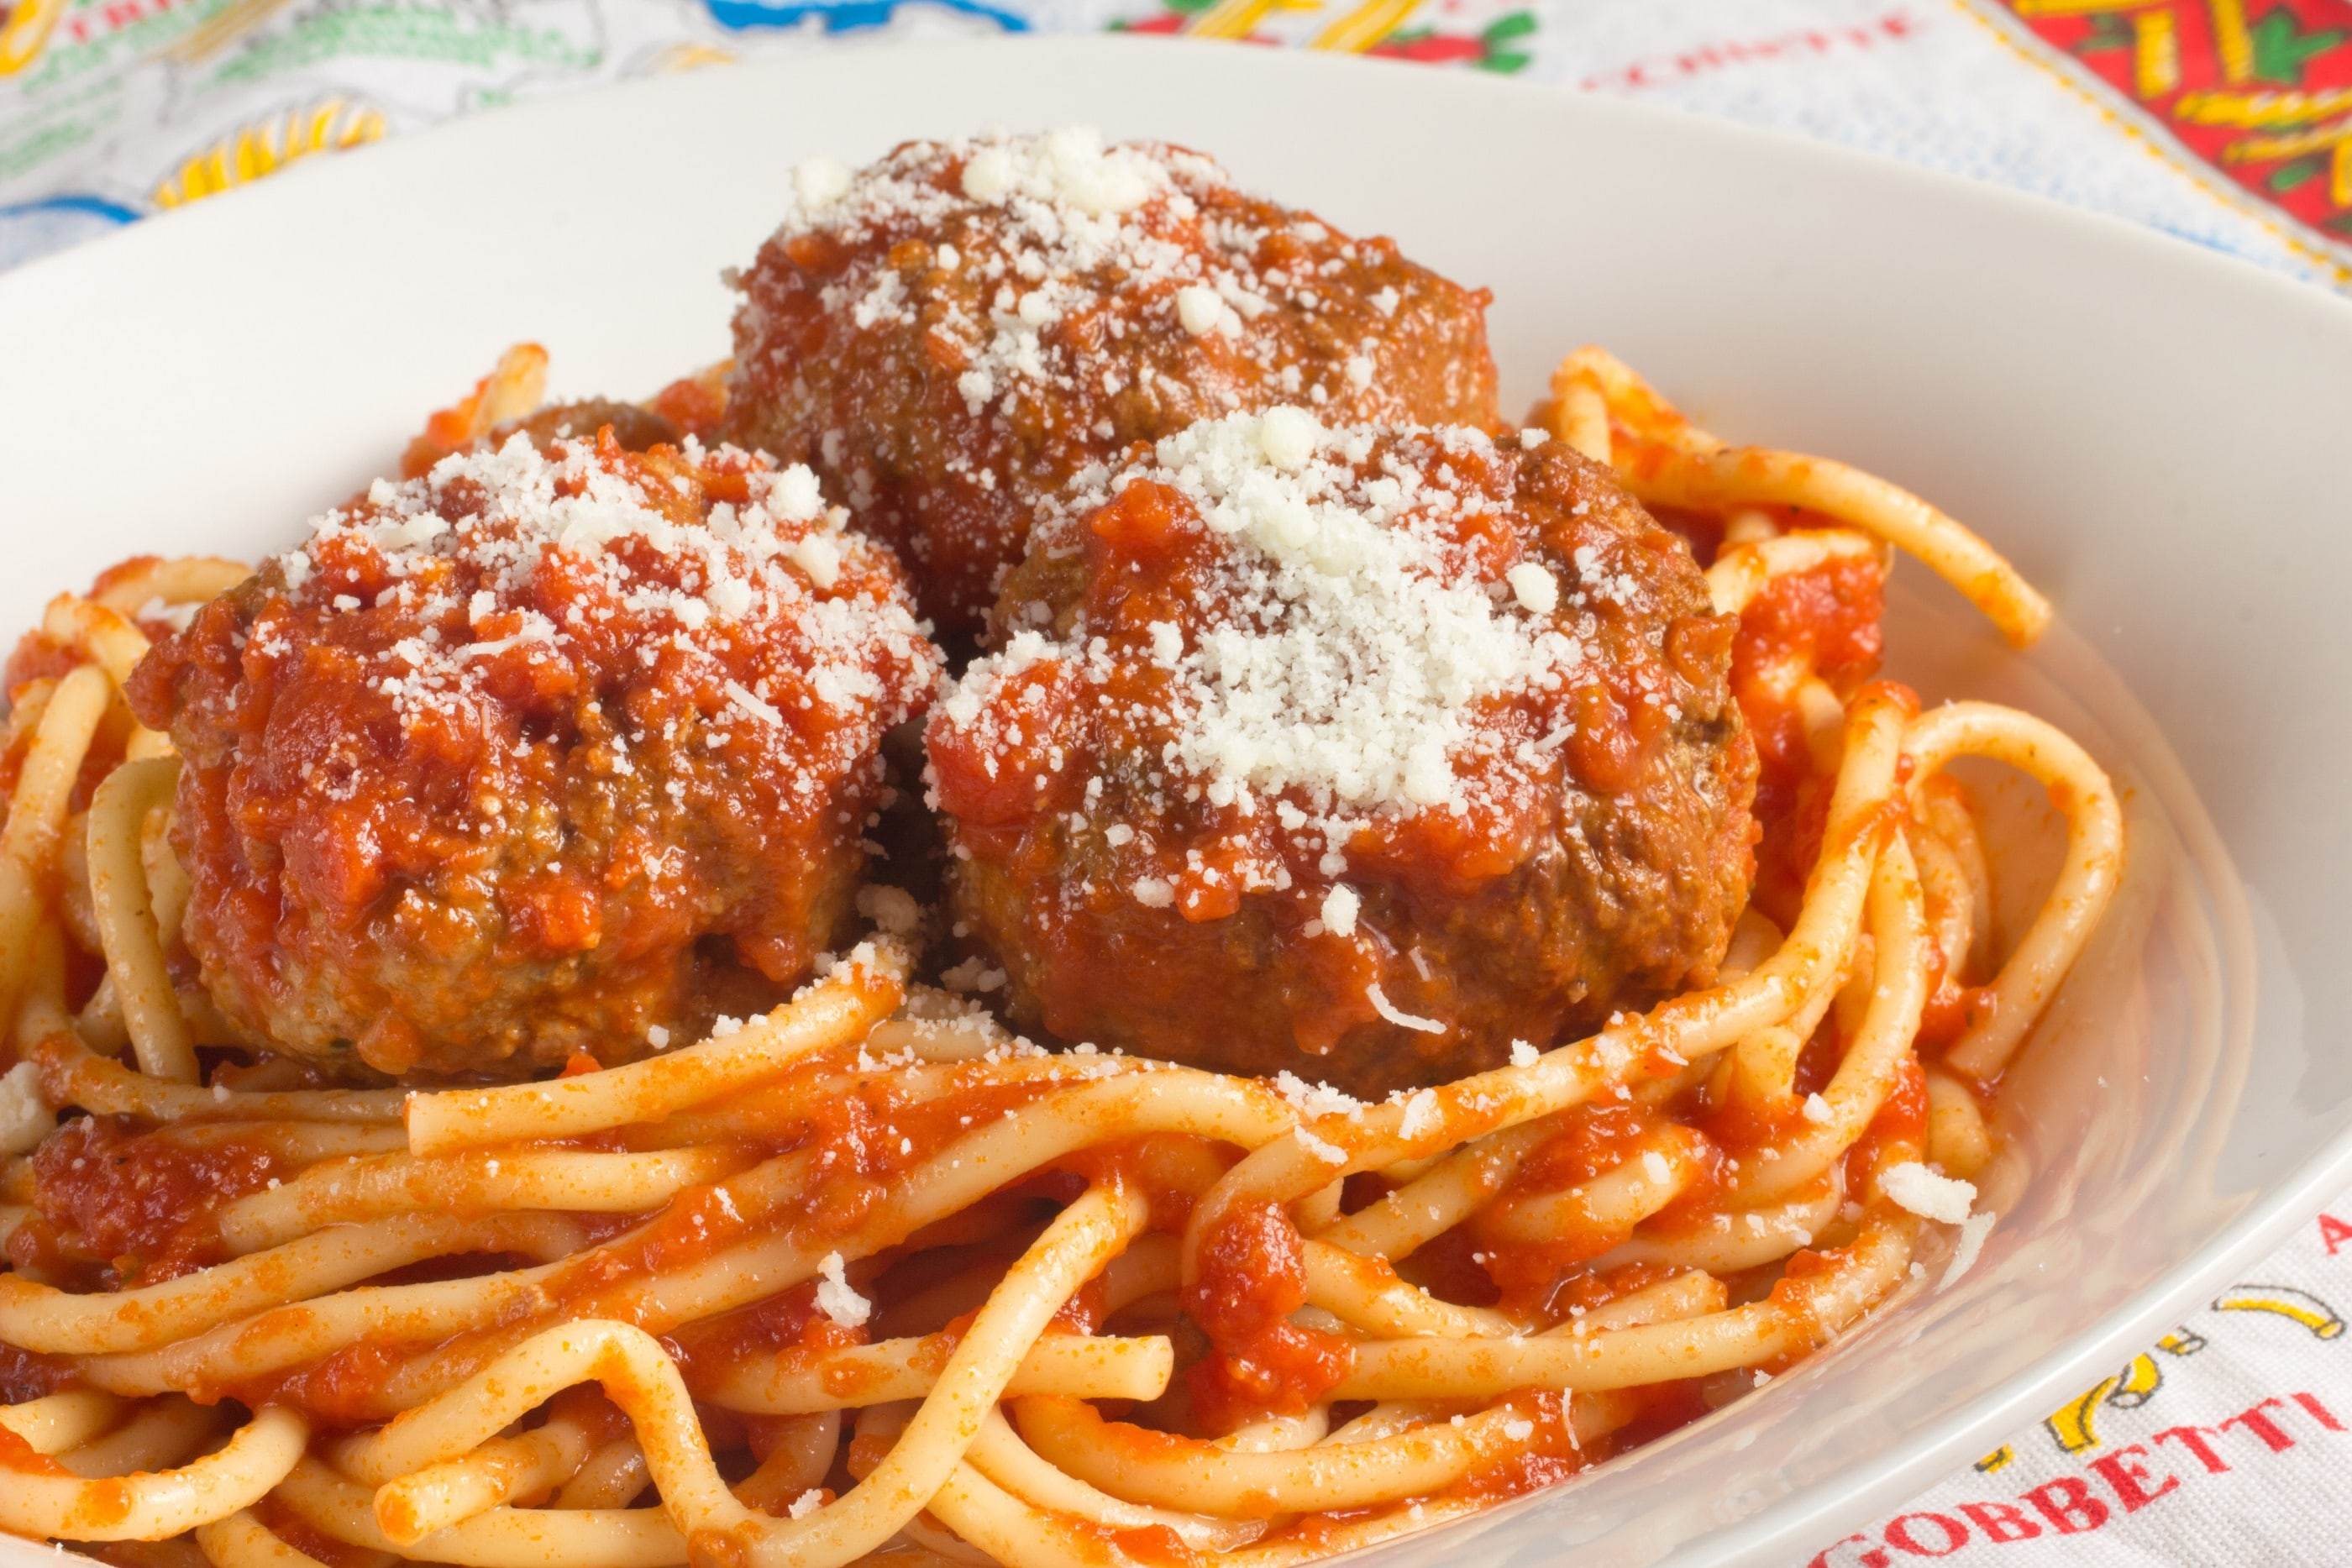 Spaghetti and meatballs in a dish